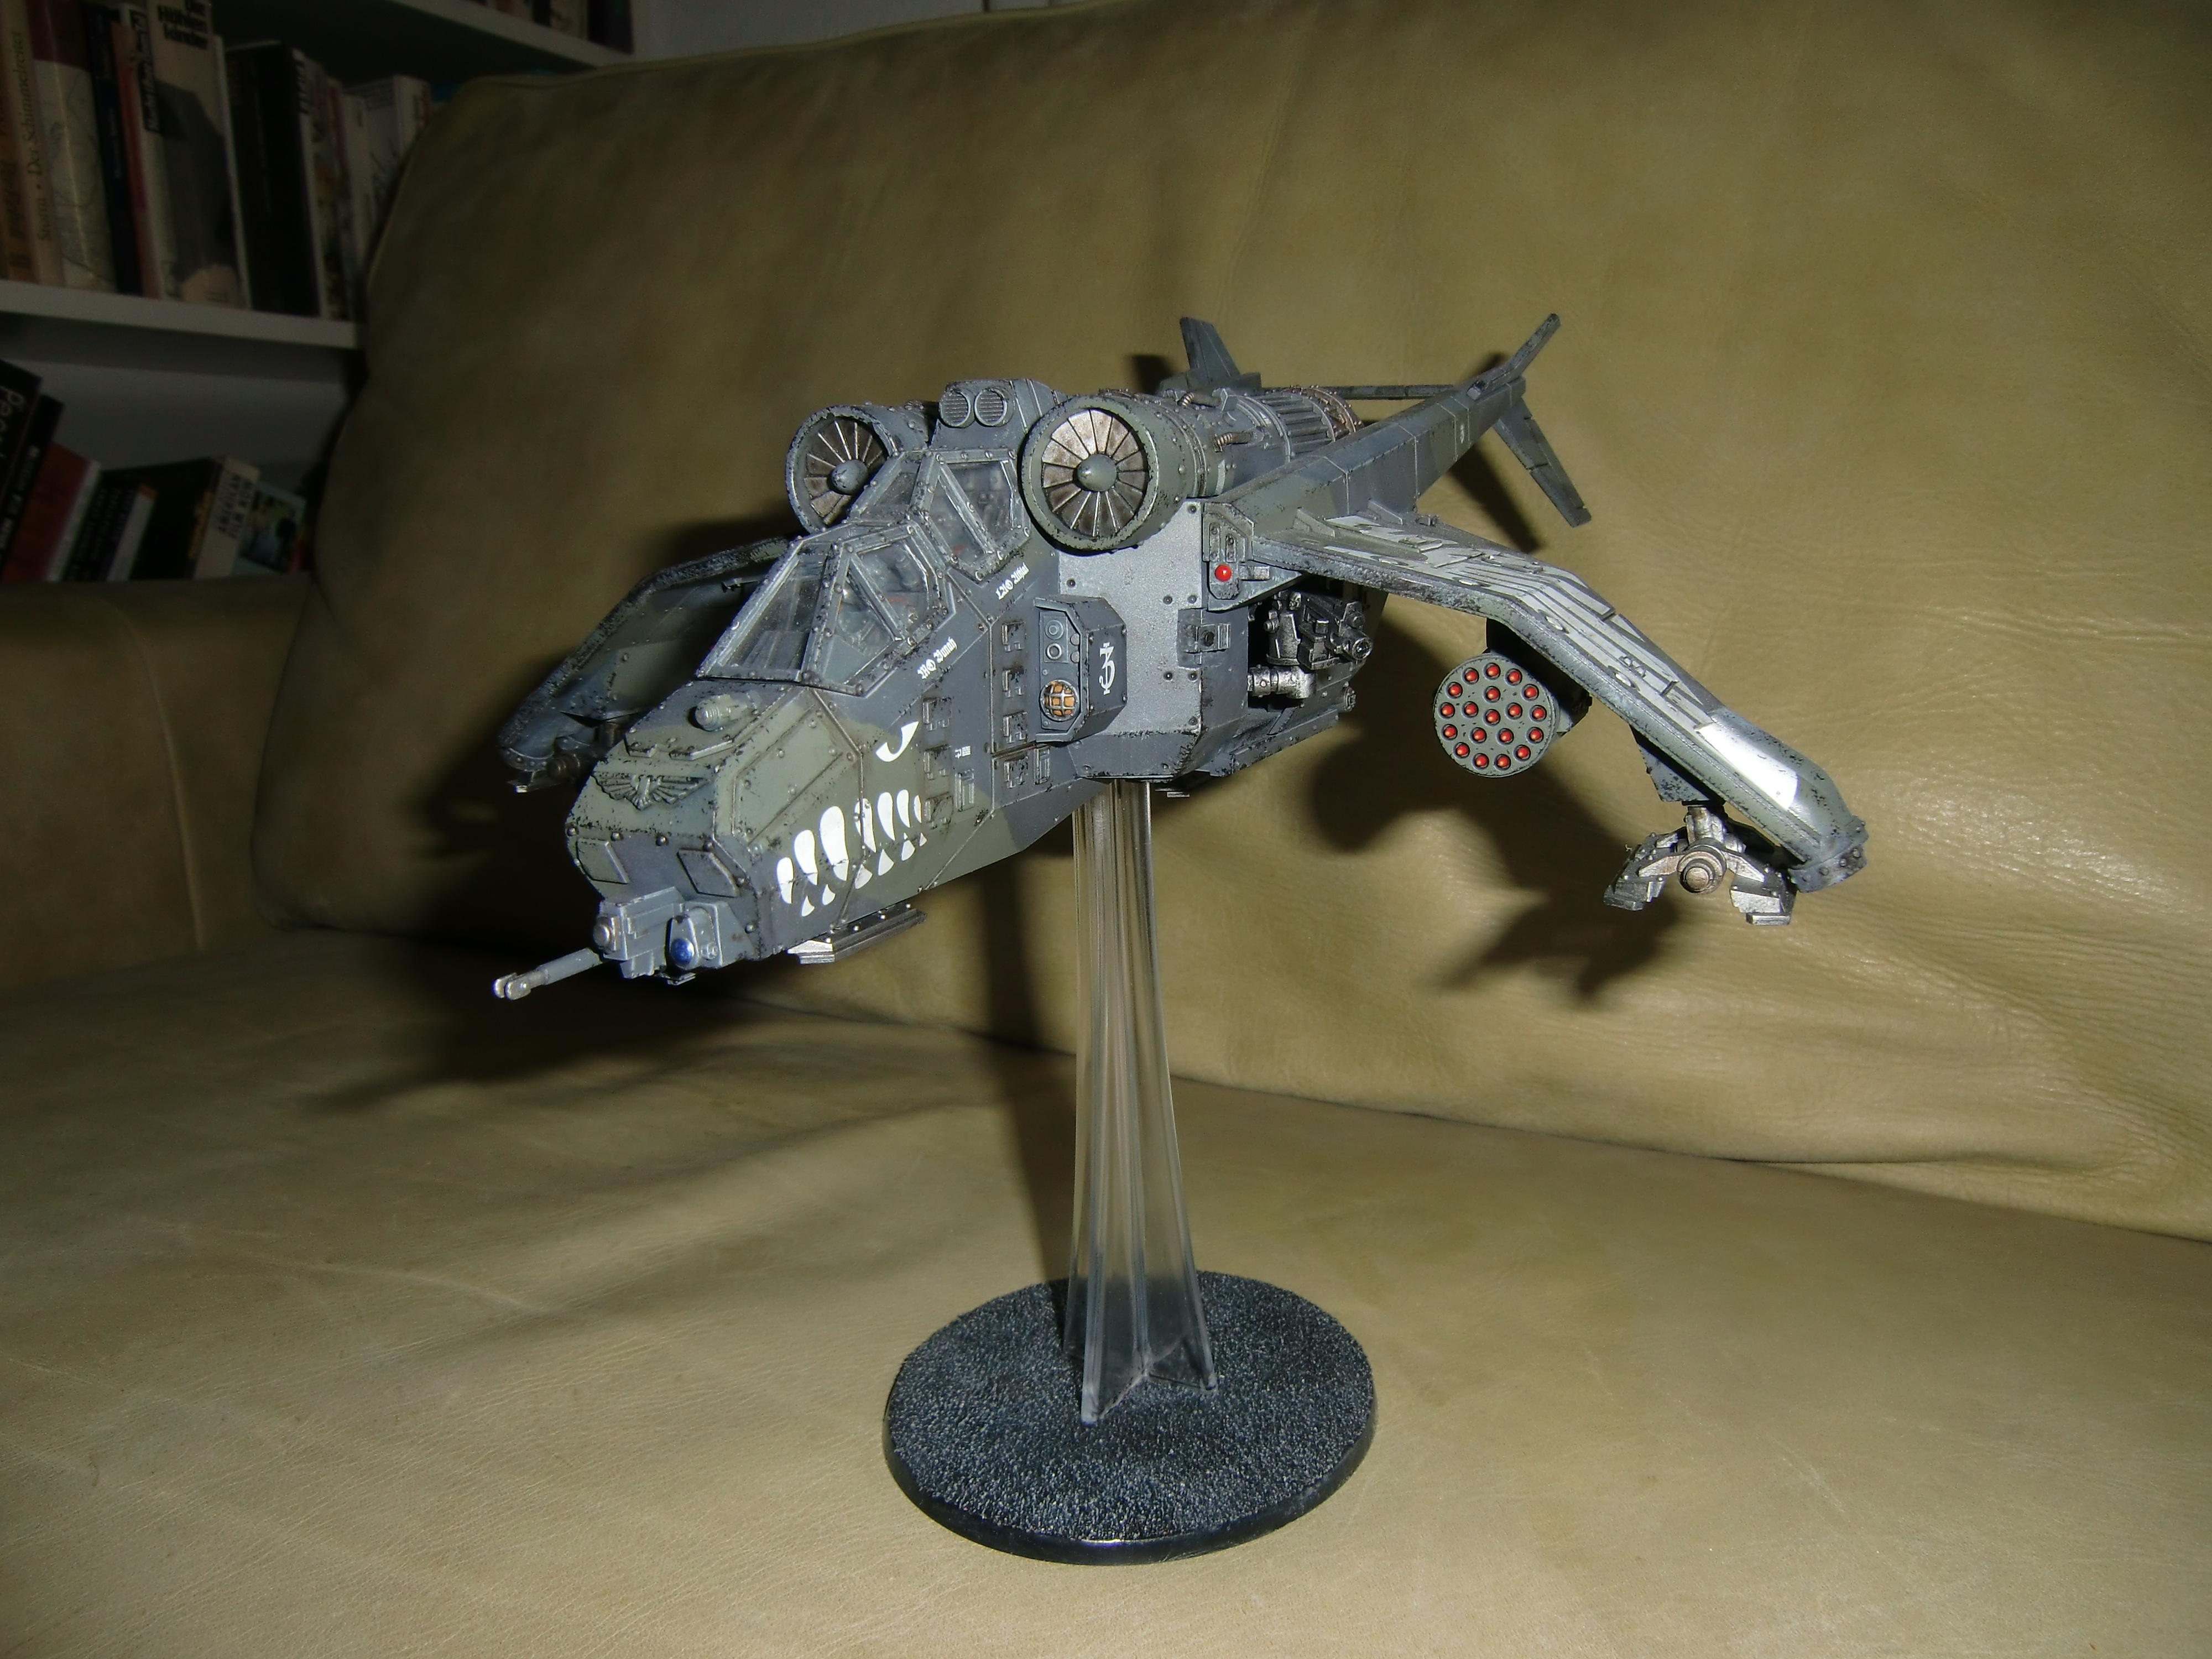 Airbrush, Forge World, Imperial Army, Imperial Guard, Valkyrie, Warhammer 40,000